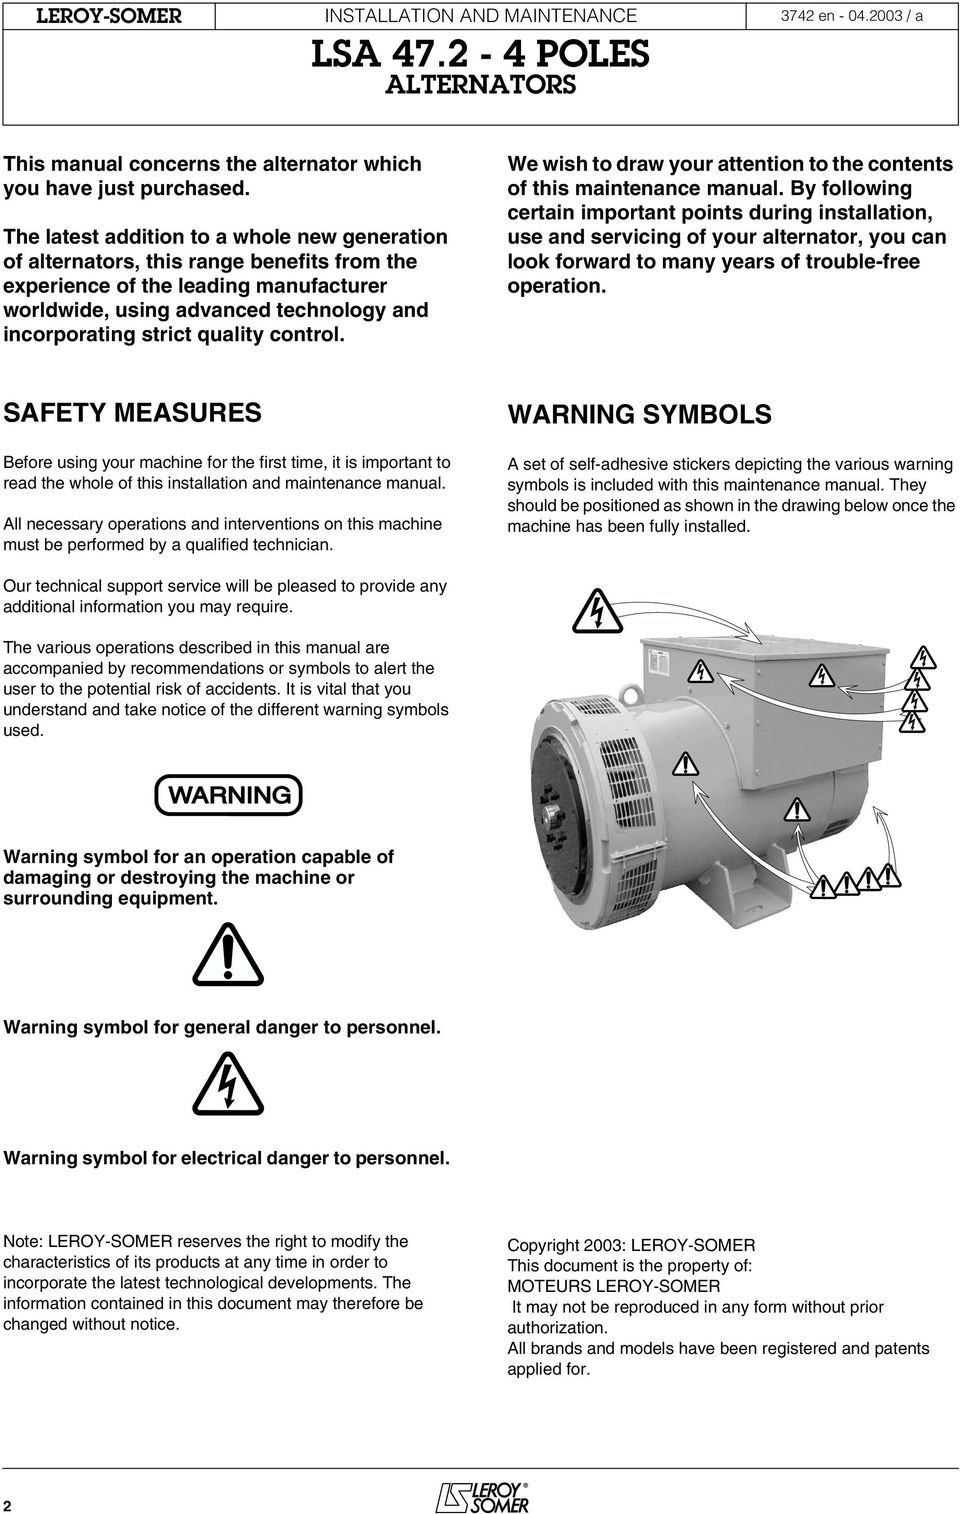 Users Guide And Maintenance Manual Leroy Somer Alternators Lsa Diesel Alternator Wiring Instruction Diagram Reference We Wish To Draw Your Attention The Contents Of This